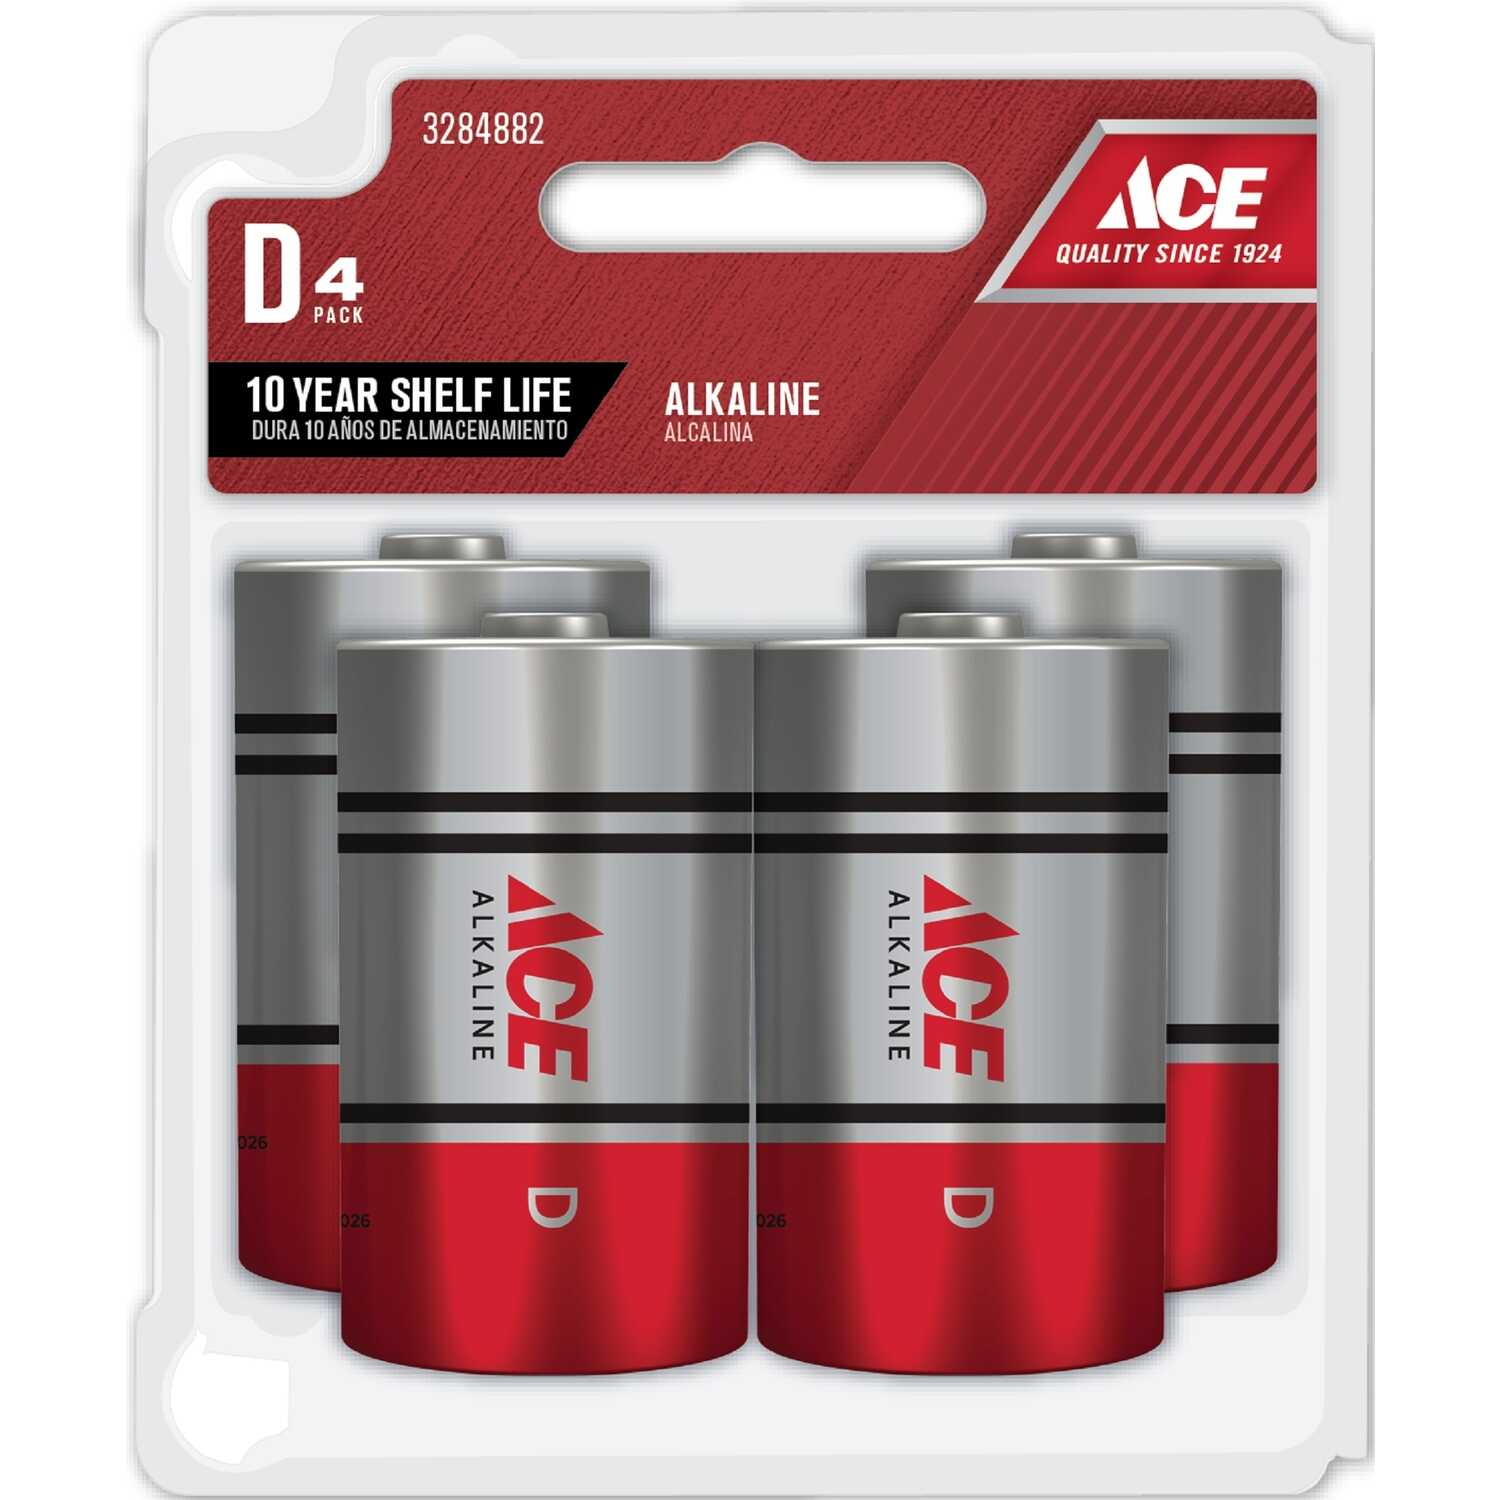 Ace  D  Alkaline  Batteries  4 pk Carded  1.5 volts